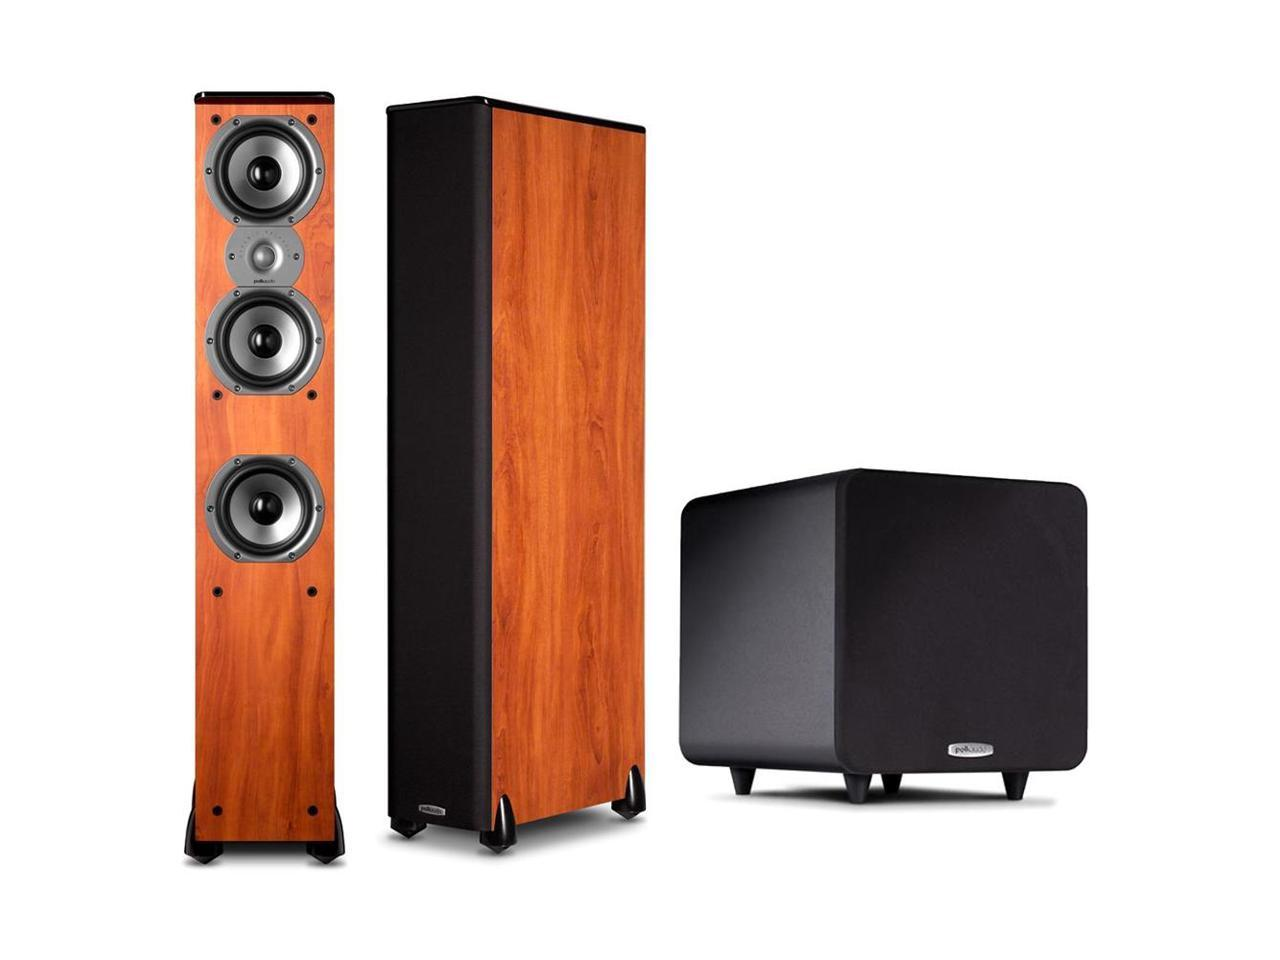 Polk Audio 2.1 Bundle w/ (2) TSi400 Floorstanders in Cherry and a PSW 111 Subwoofer